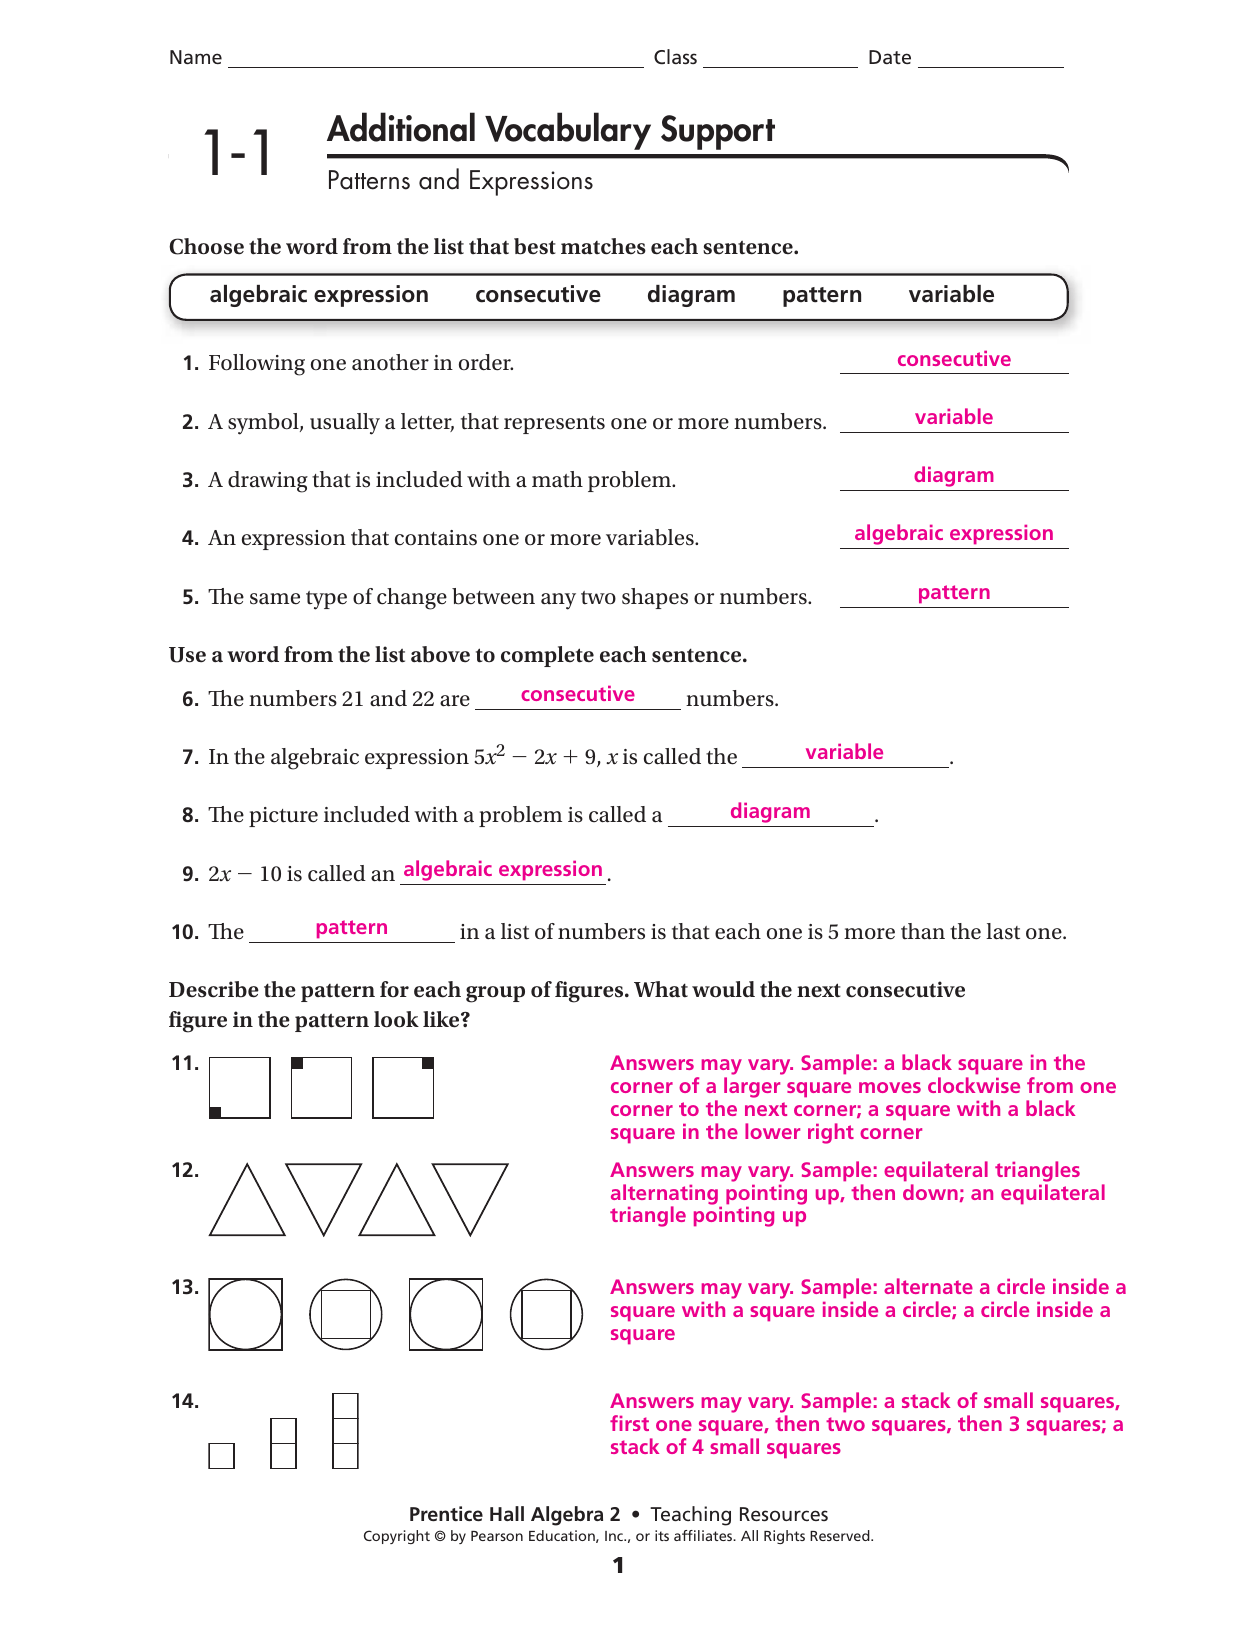 Glencoe Algebra 2 Chapter 5 Worksheet Answer Key